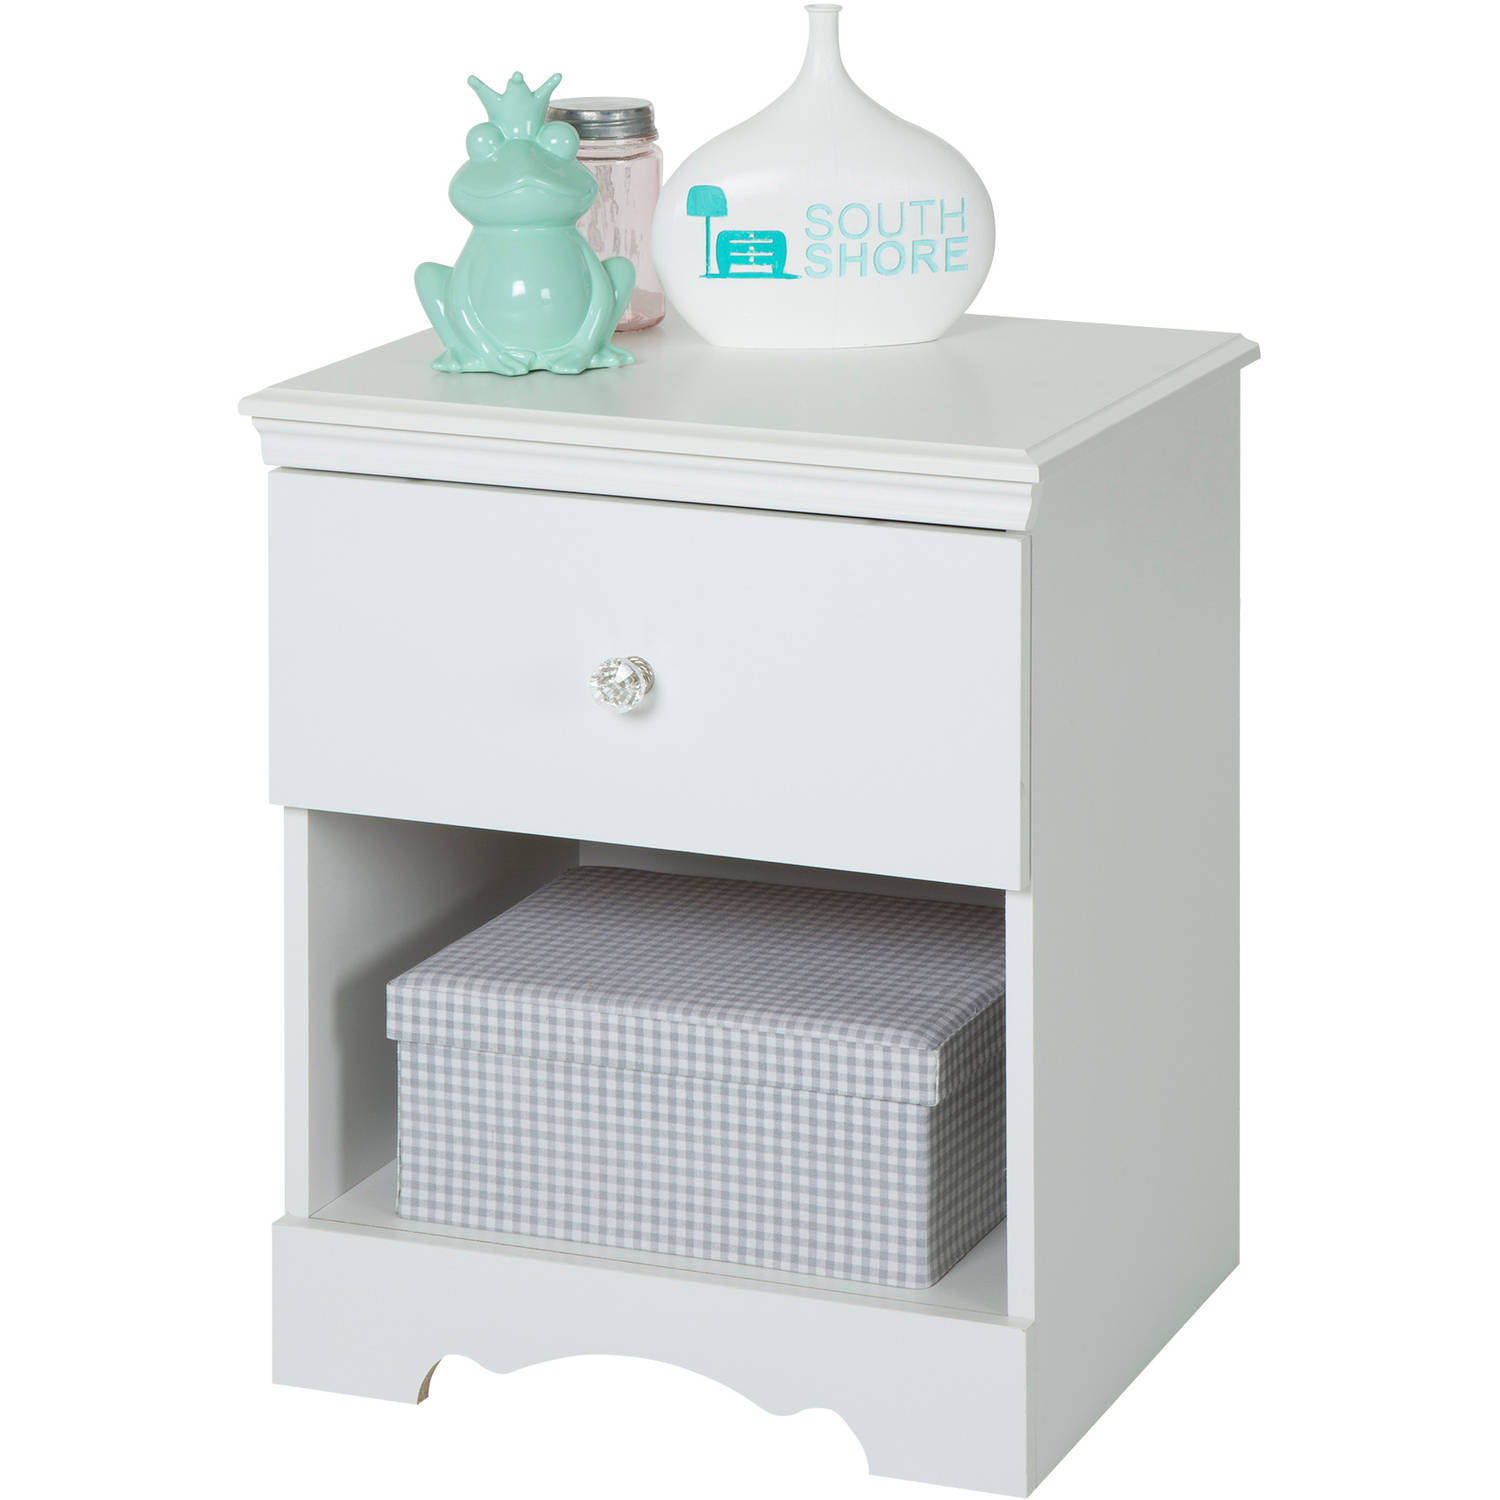 South Shore Crystal 1-Drawer Nightstand, Multiple Finishes by South Shore